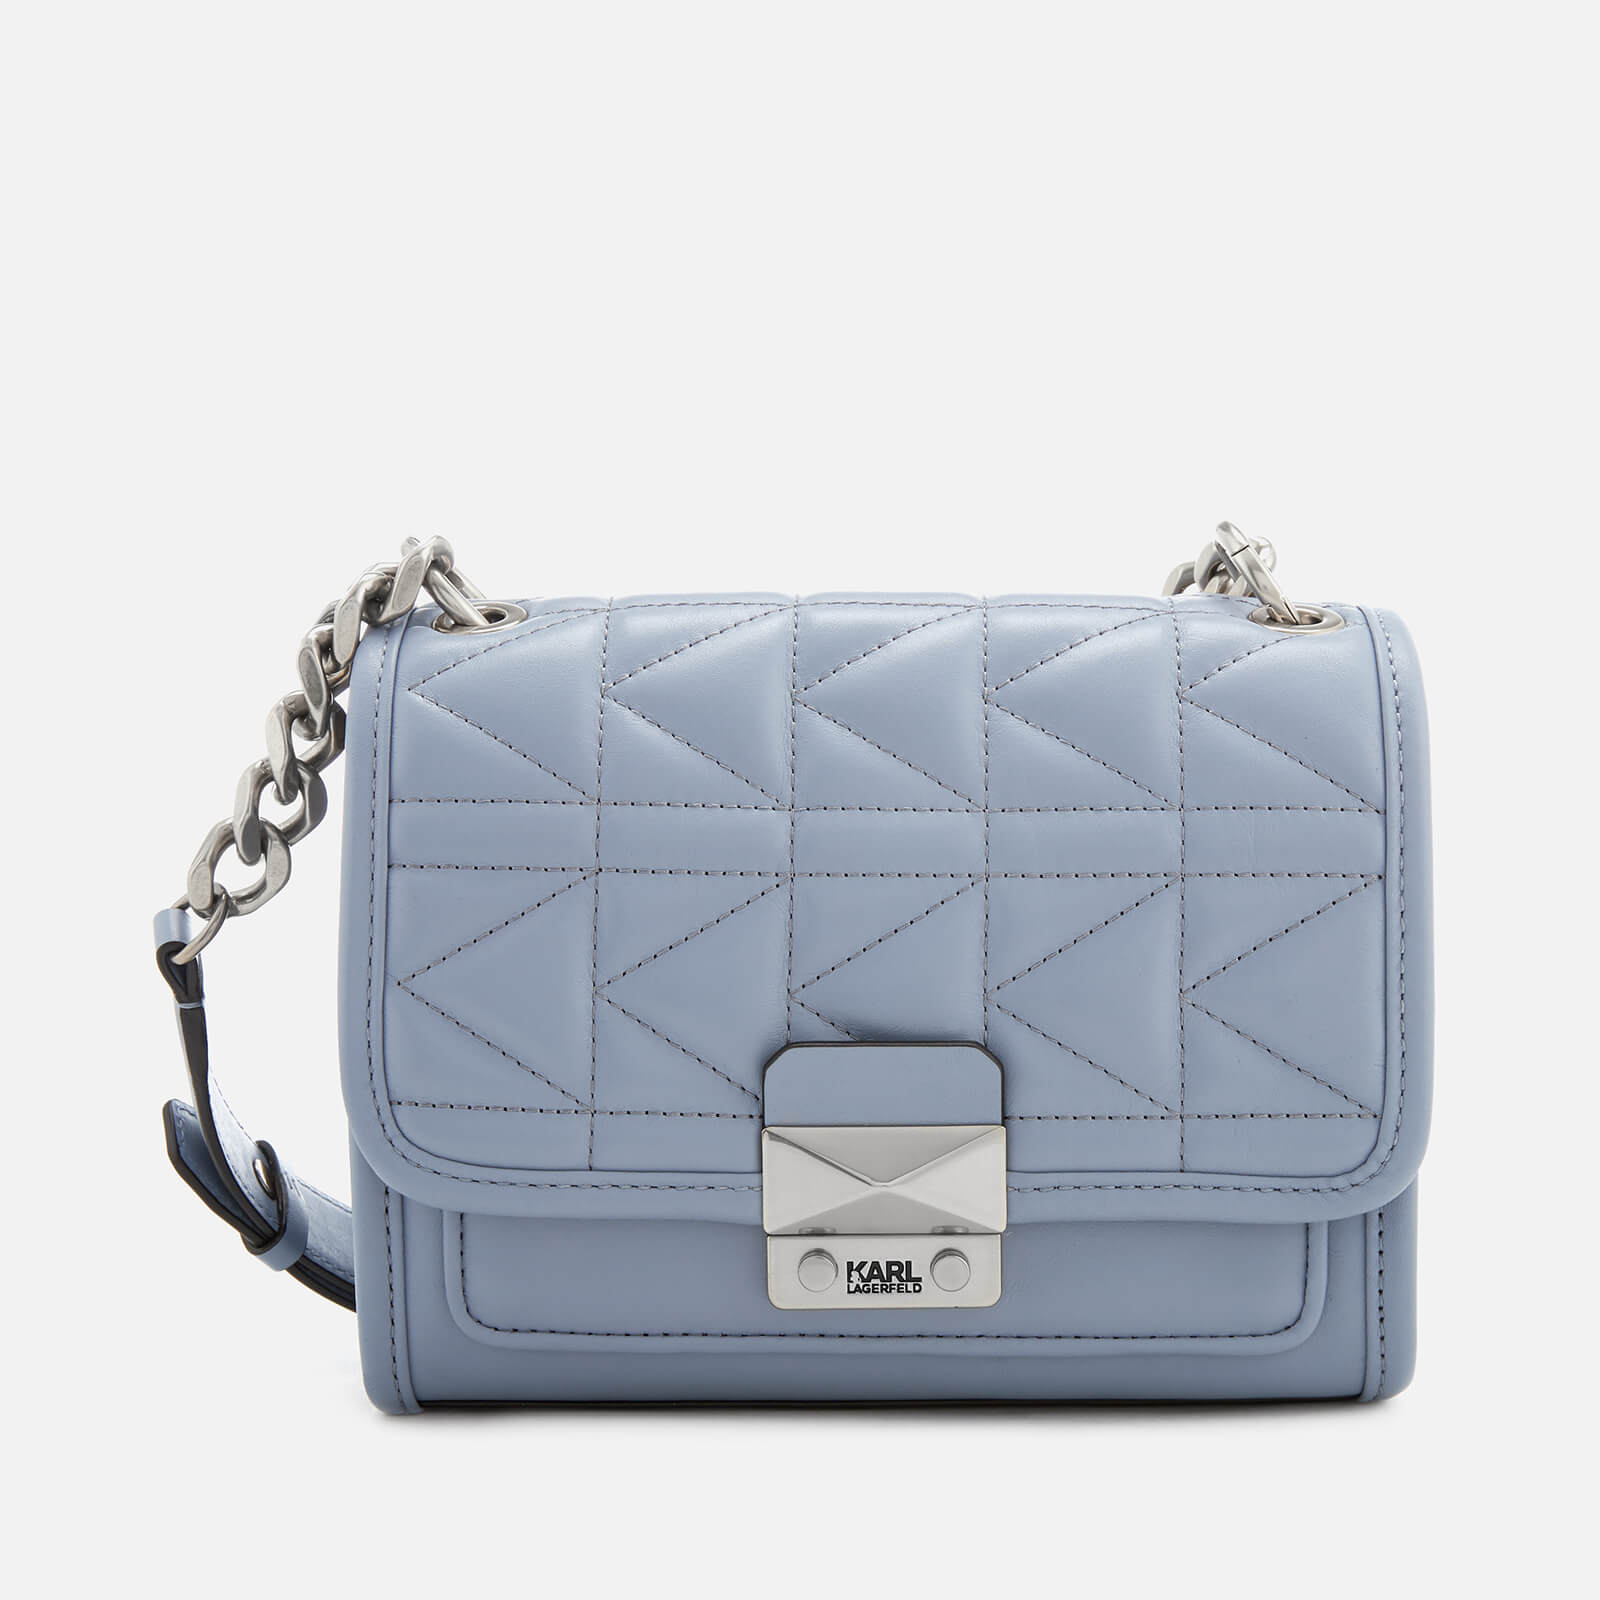 0105bd3396a6 Karl Lagerfeld Women s K Kuilted Mini Handbag - Mistic Blue - Free UK  Delivery over £50